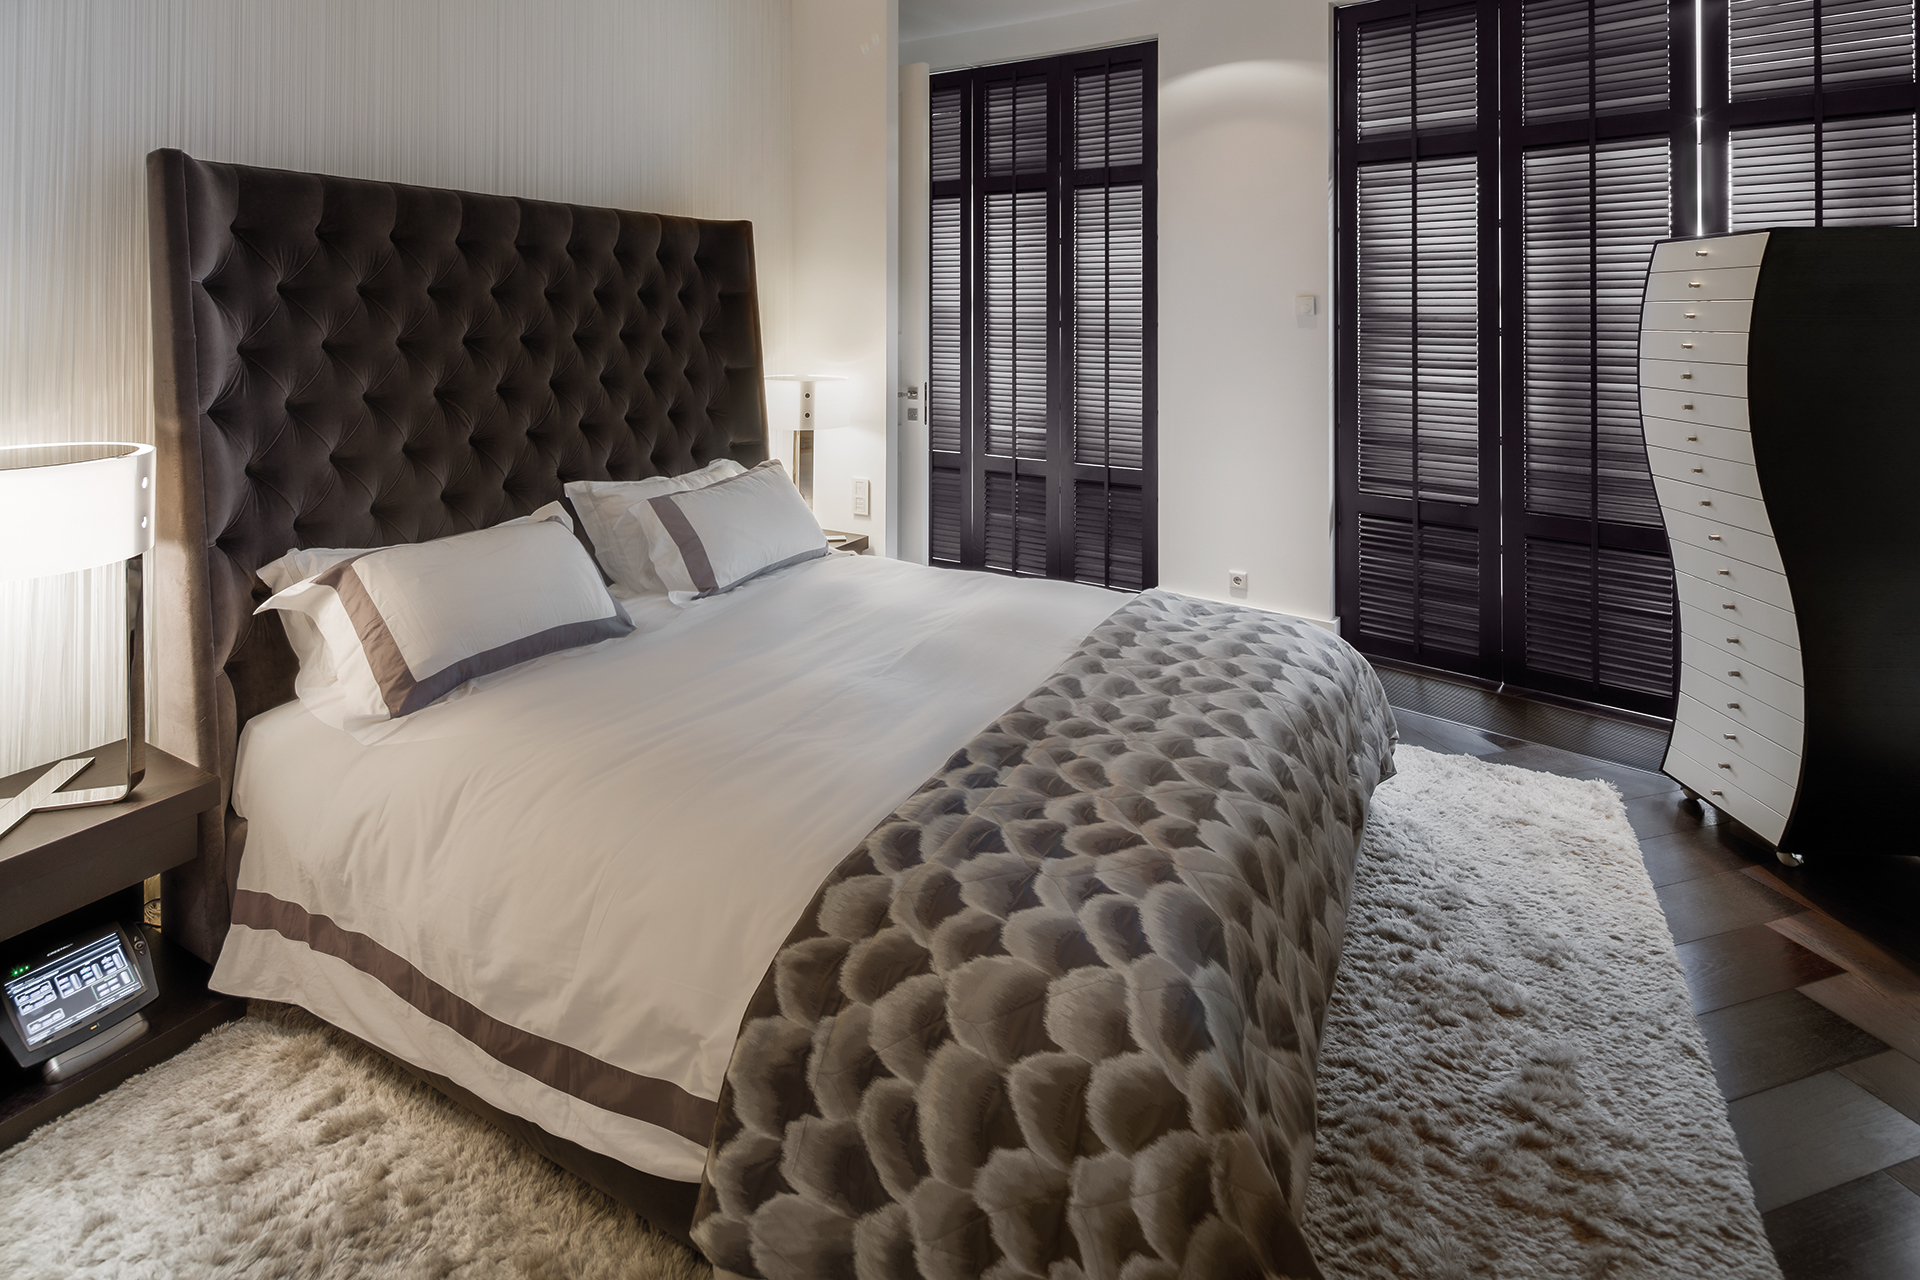 Master bedroom with a wavy cabinet and large headboard bed